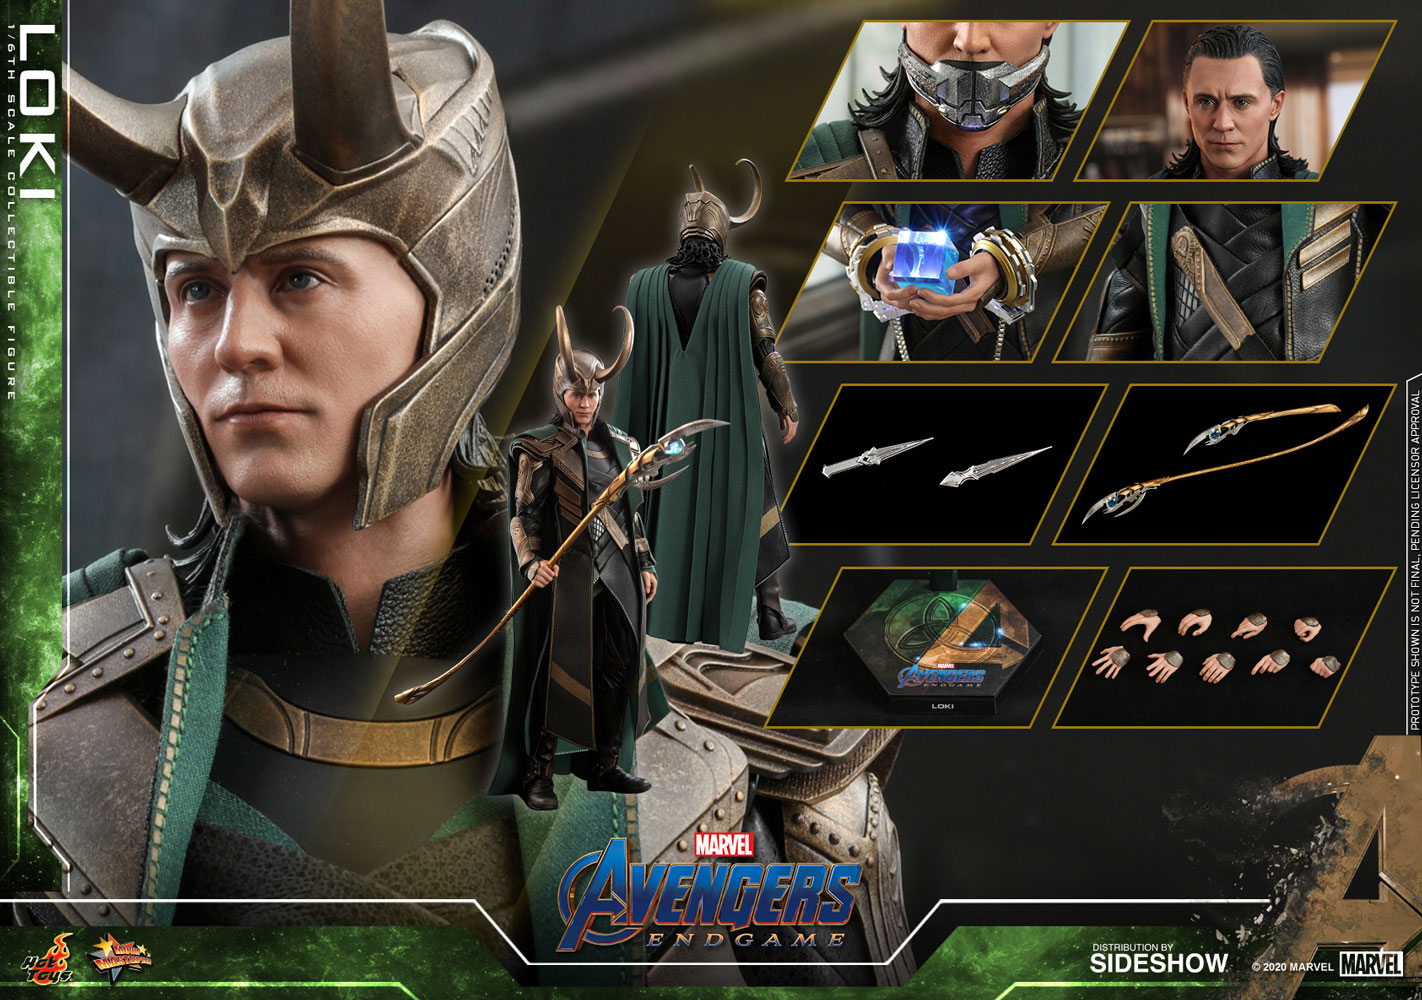 Hot Toys MMS579 Avengers: Endgame Loki 1/6th Scale Figure